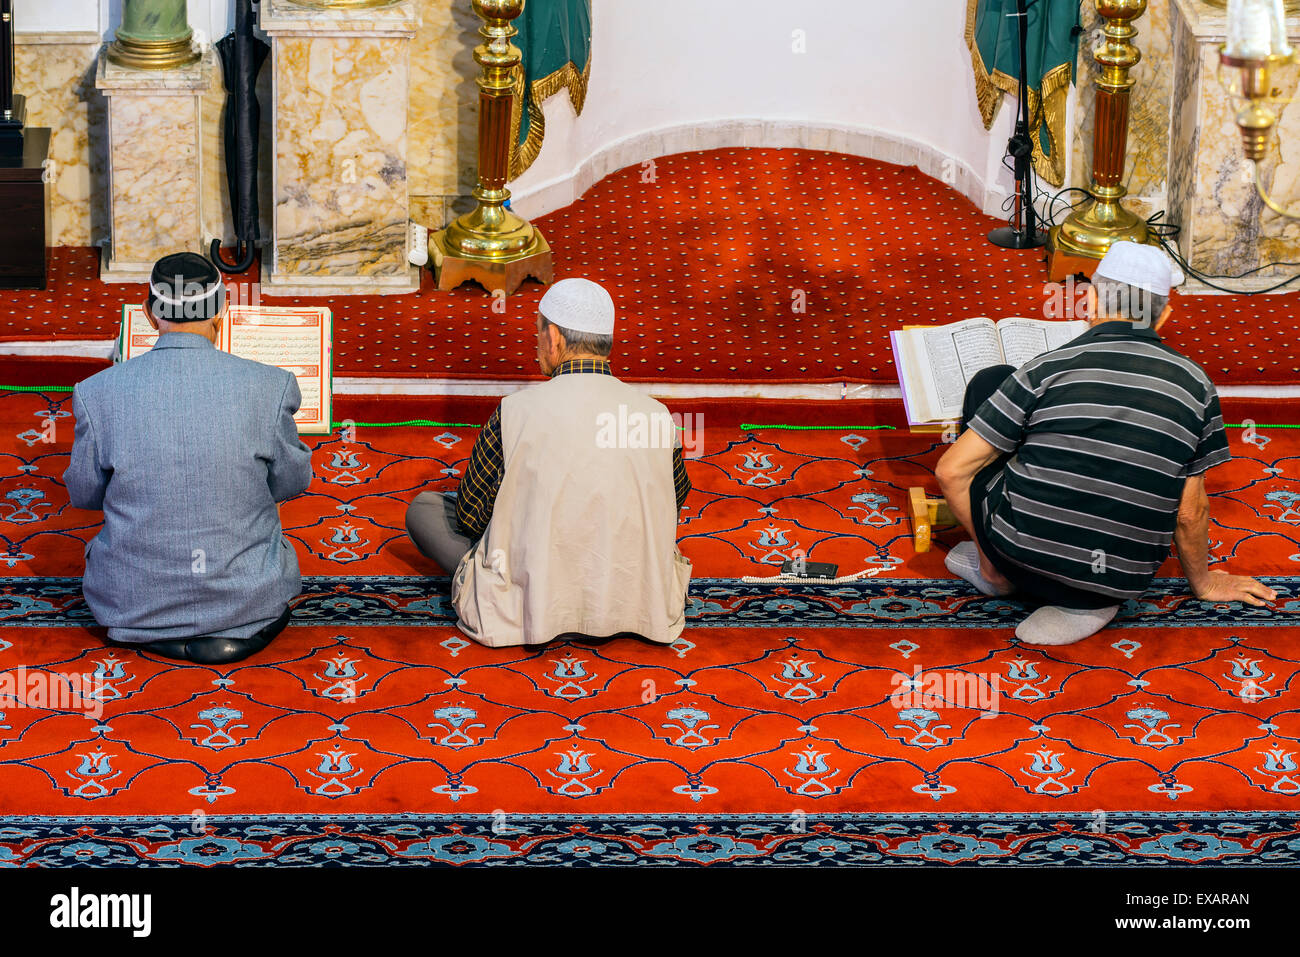 Worshipers praying inside Hisar Camii or Fortress Mosque, Izmir, Turkey - Stock Image